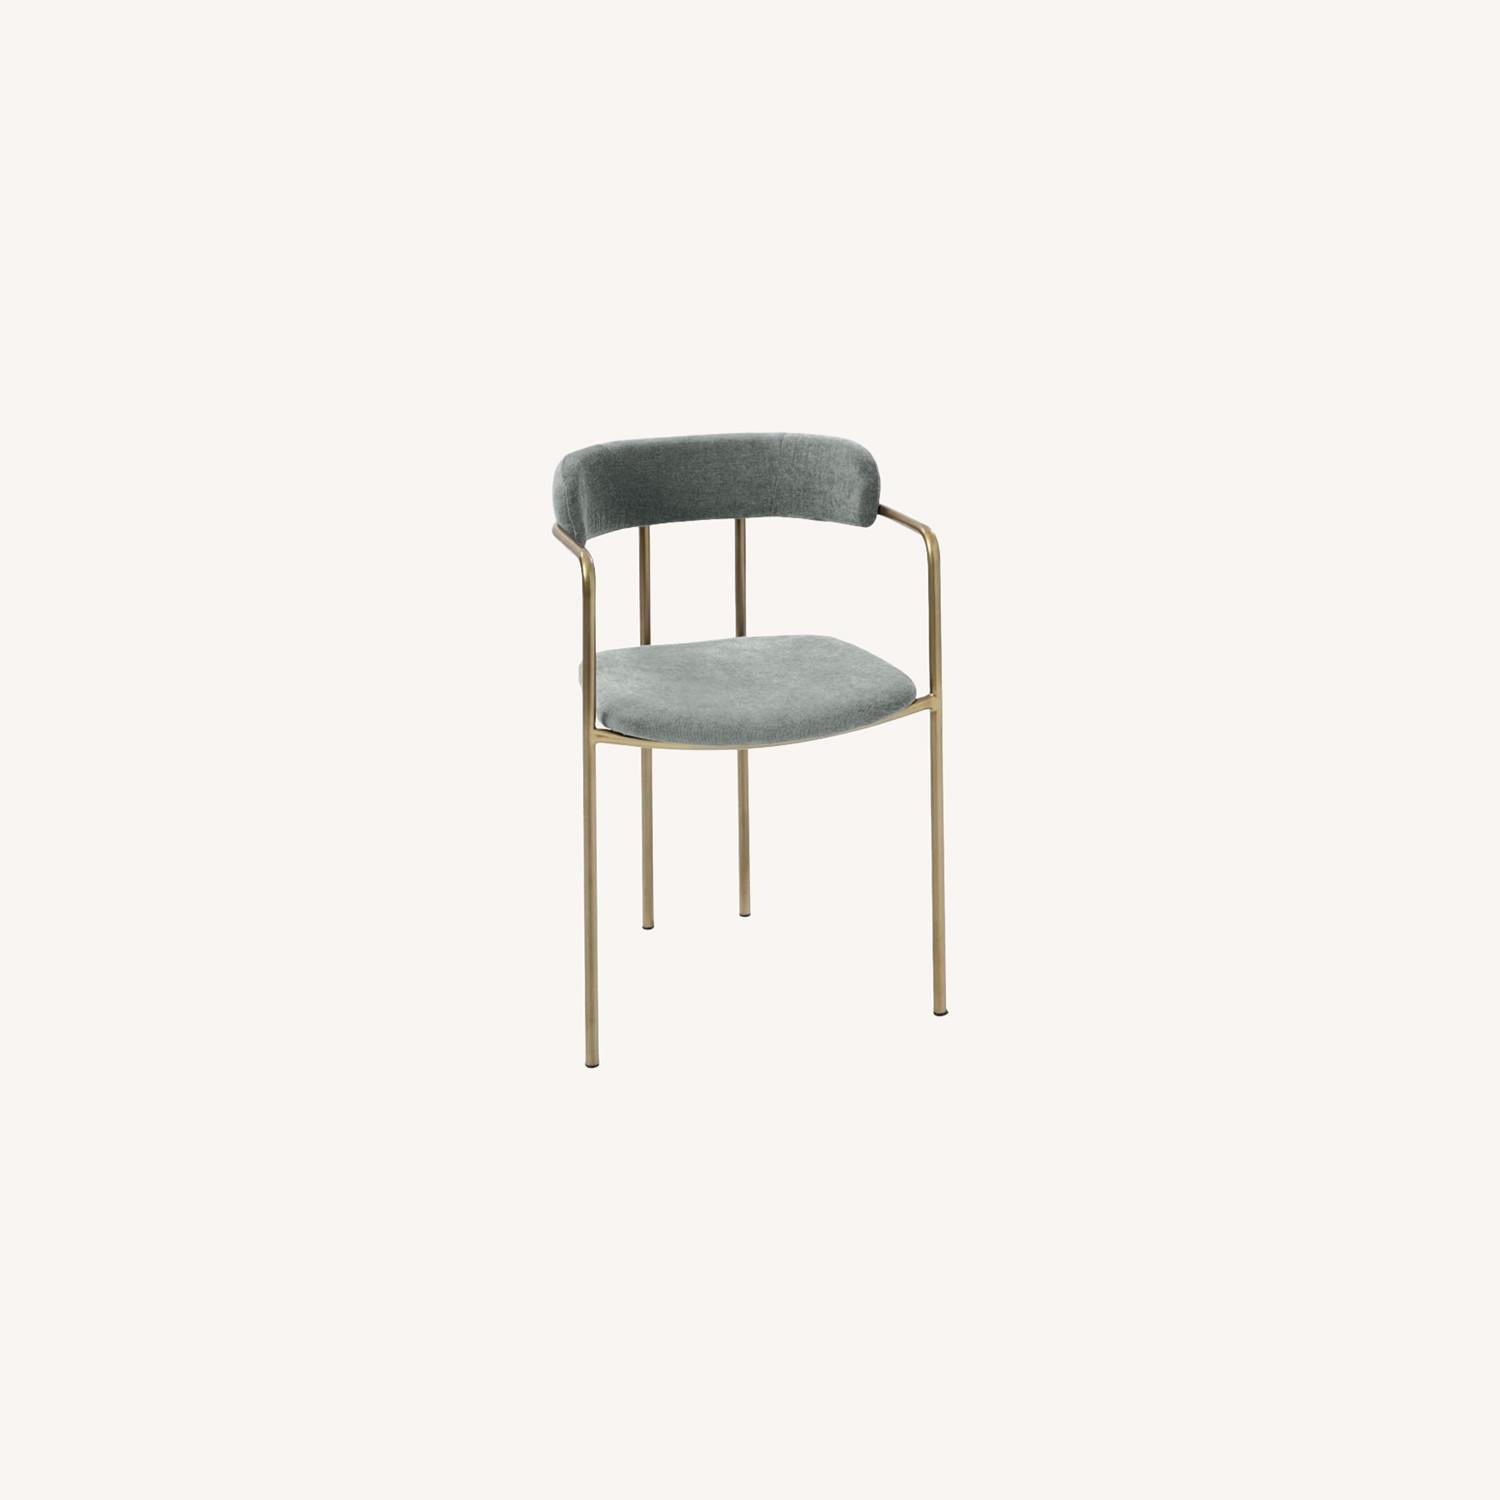 West Elm Lenox Upholstered Dining Chair - image-0